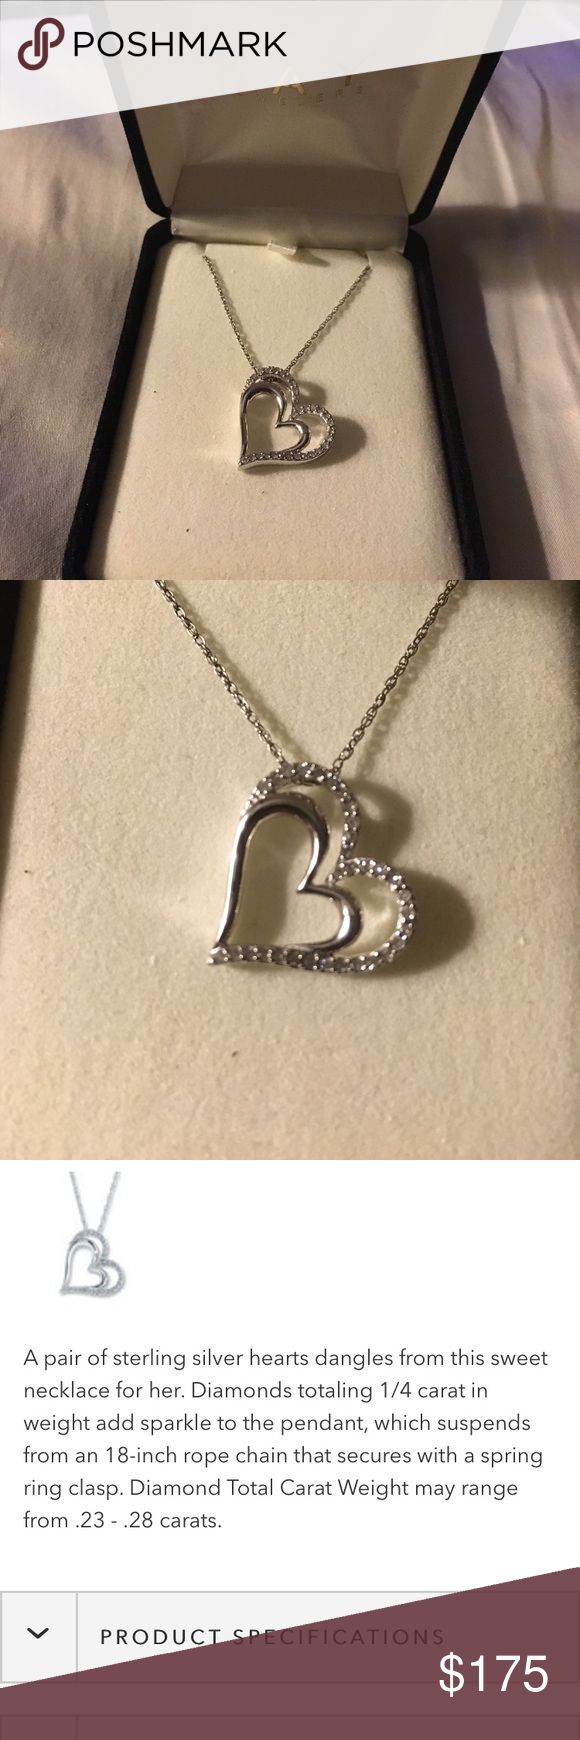 Brand new!! Kay Jewelers Diamond heart necklace Check 3rd photo for detailed description on website. Silver Double heart necklace with diamonds on the outer heart Kay Jewelers Jewelry Necklaces